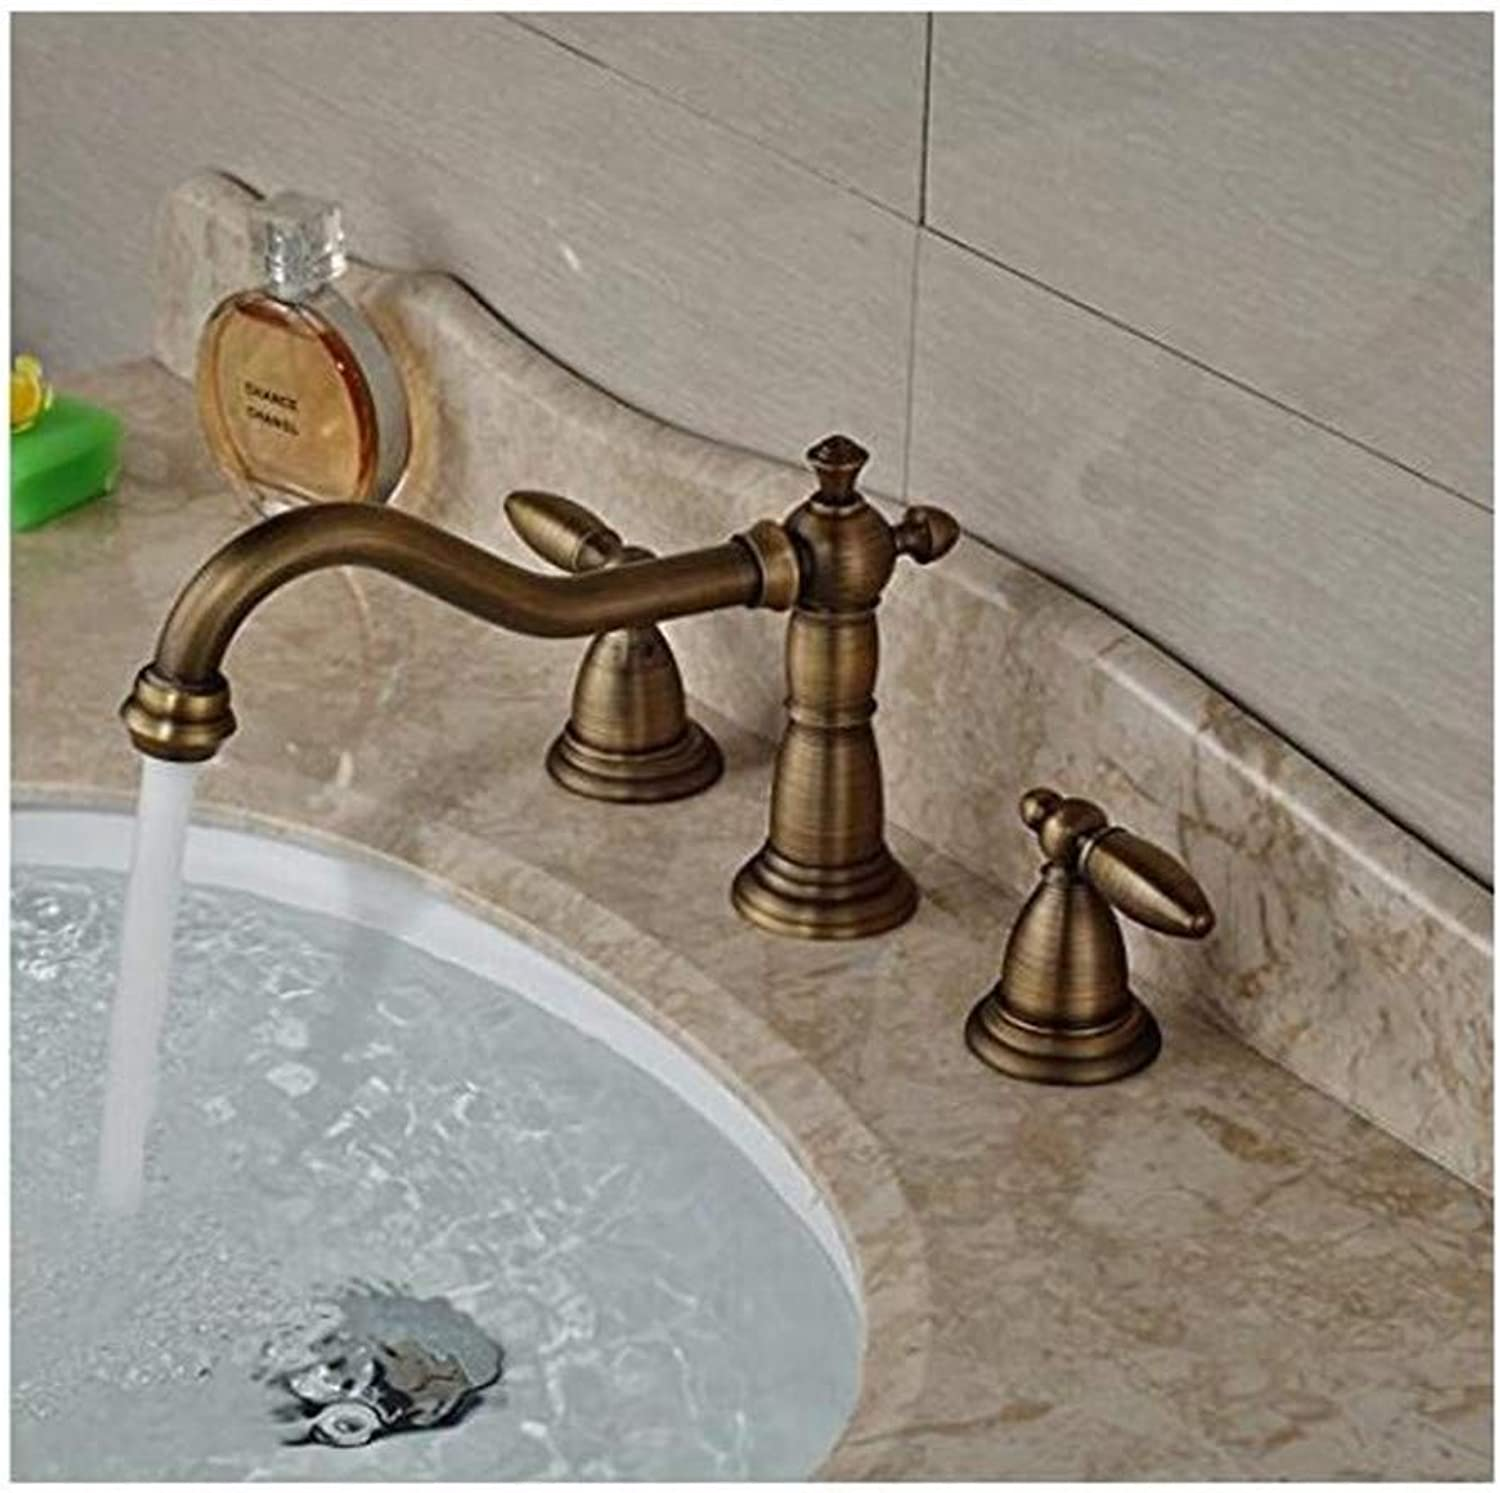 Faucet Vintage Plated Mixer Faucet Deck Mount Basin Sink Faucet Dual Handle Brass Antique Mixer Taps